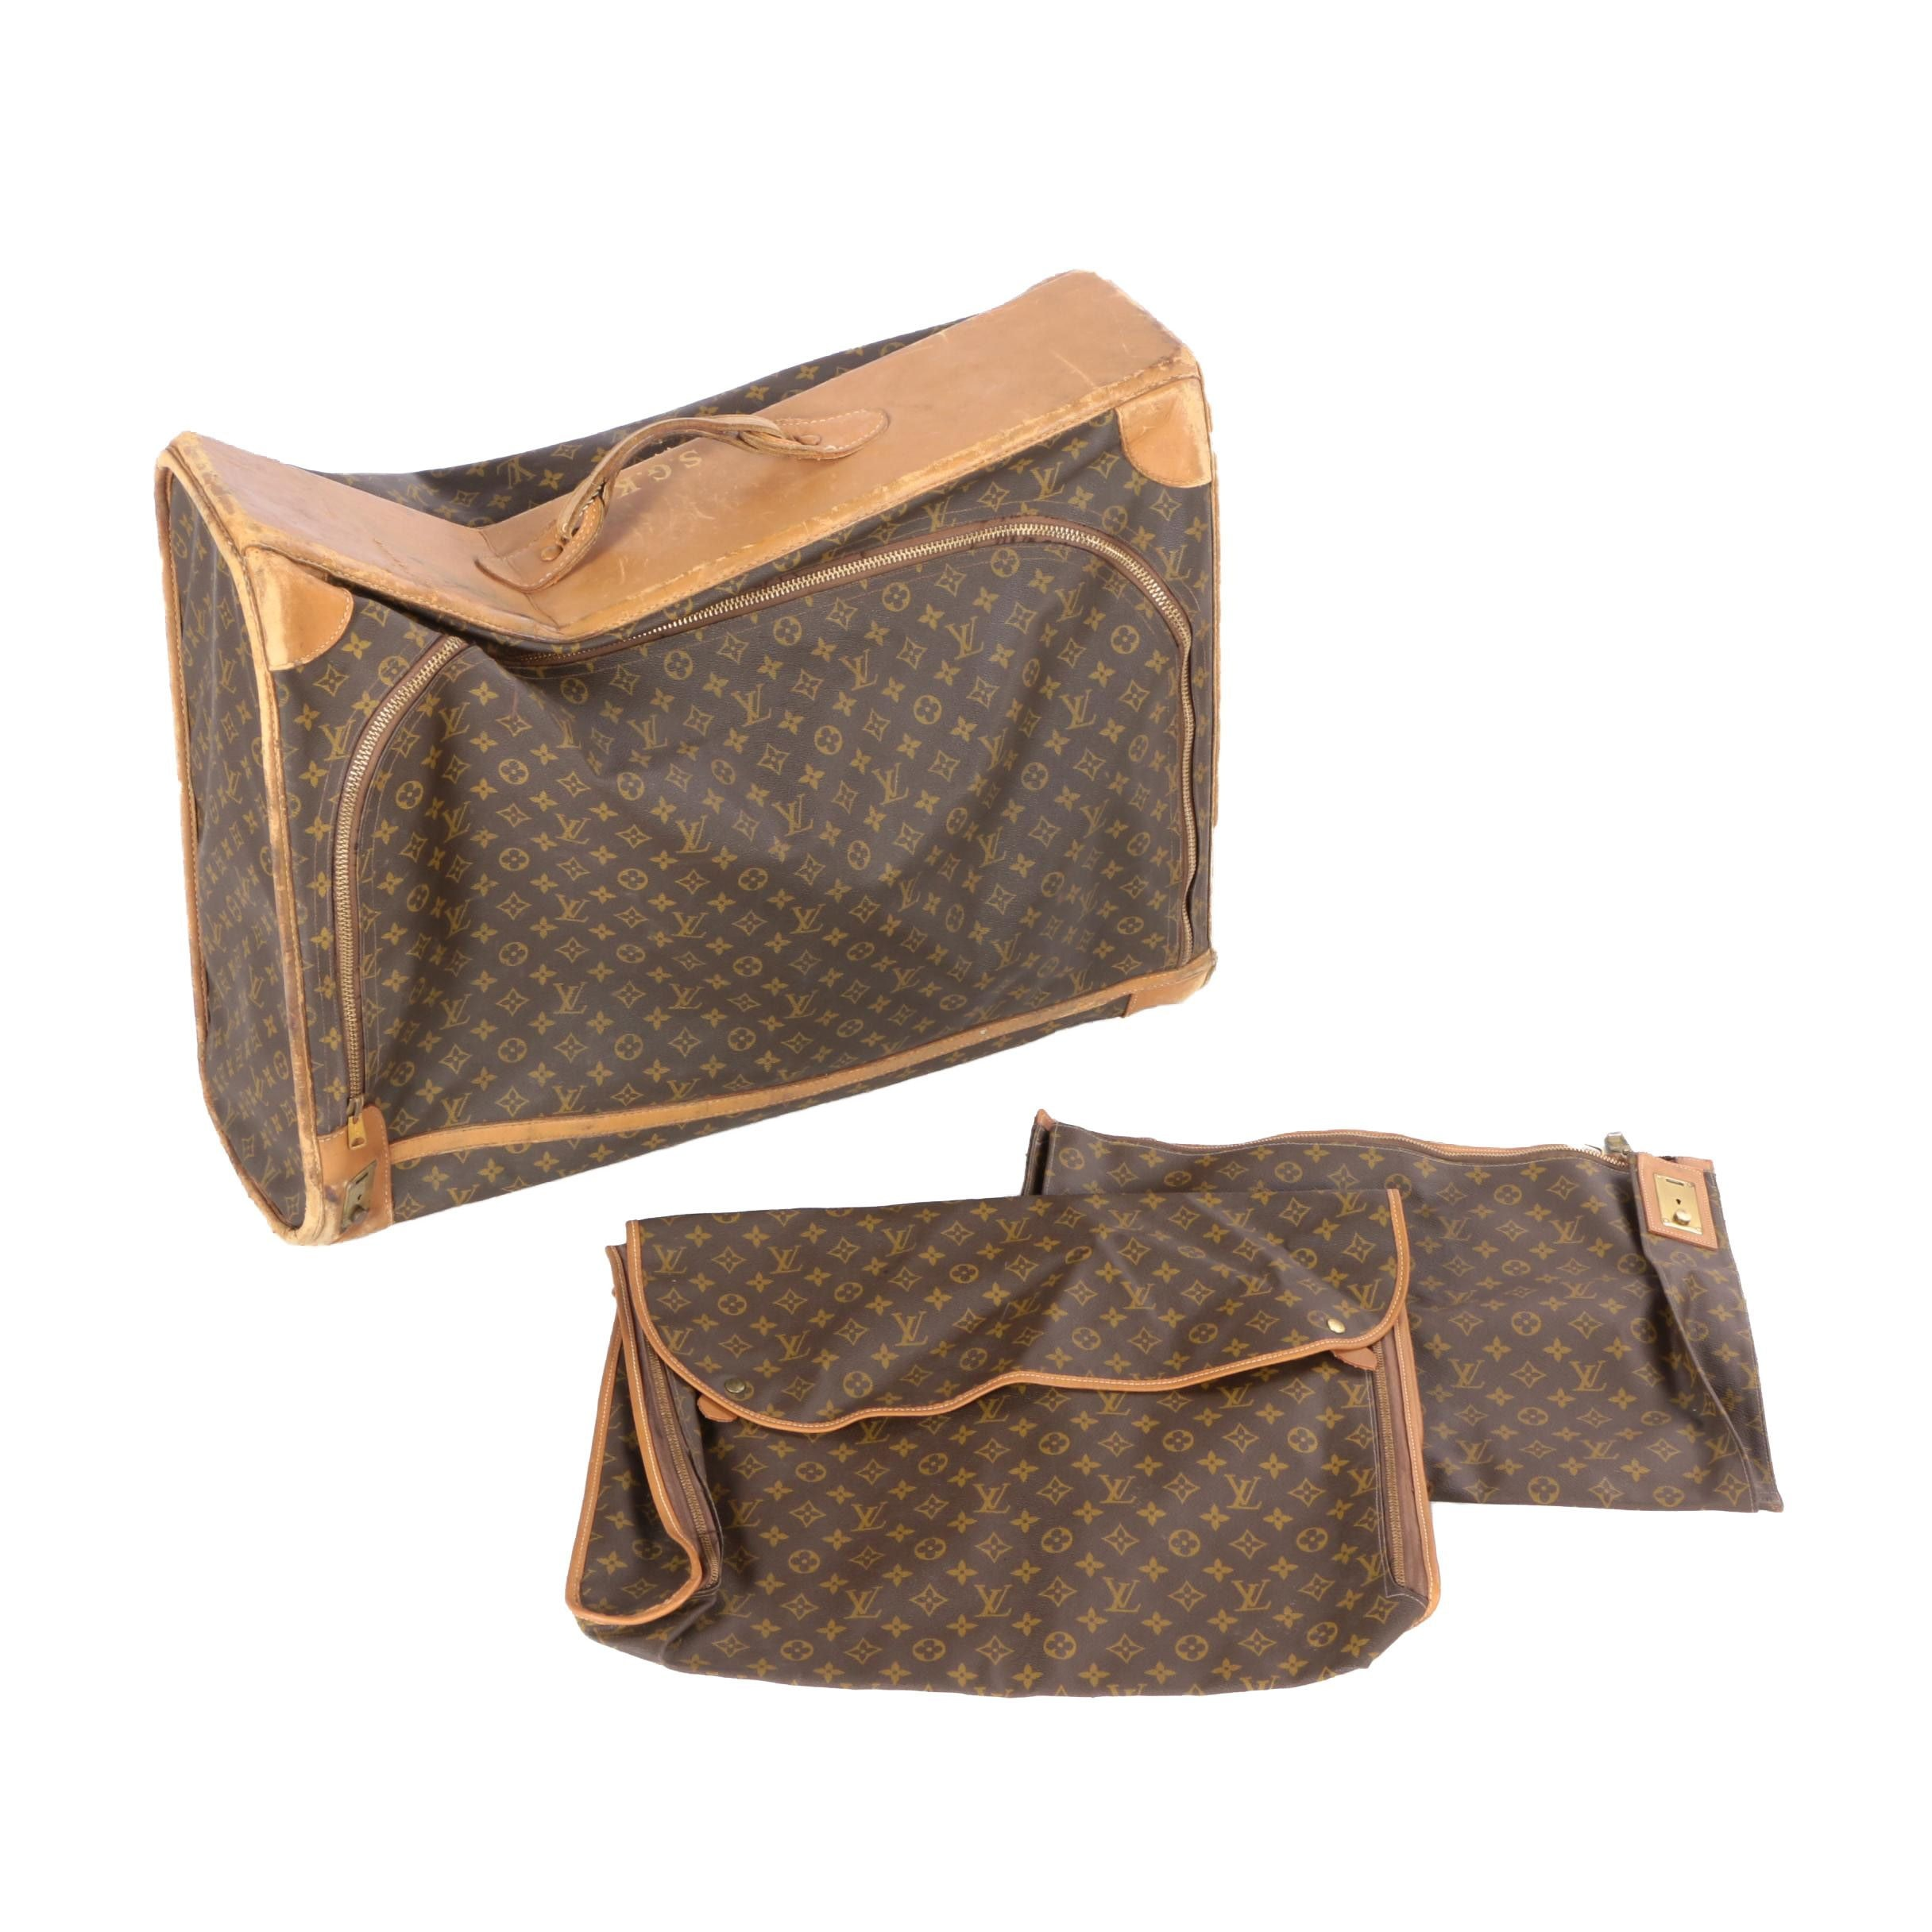 Louis Vuitton Monogram Luggage with Pouches